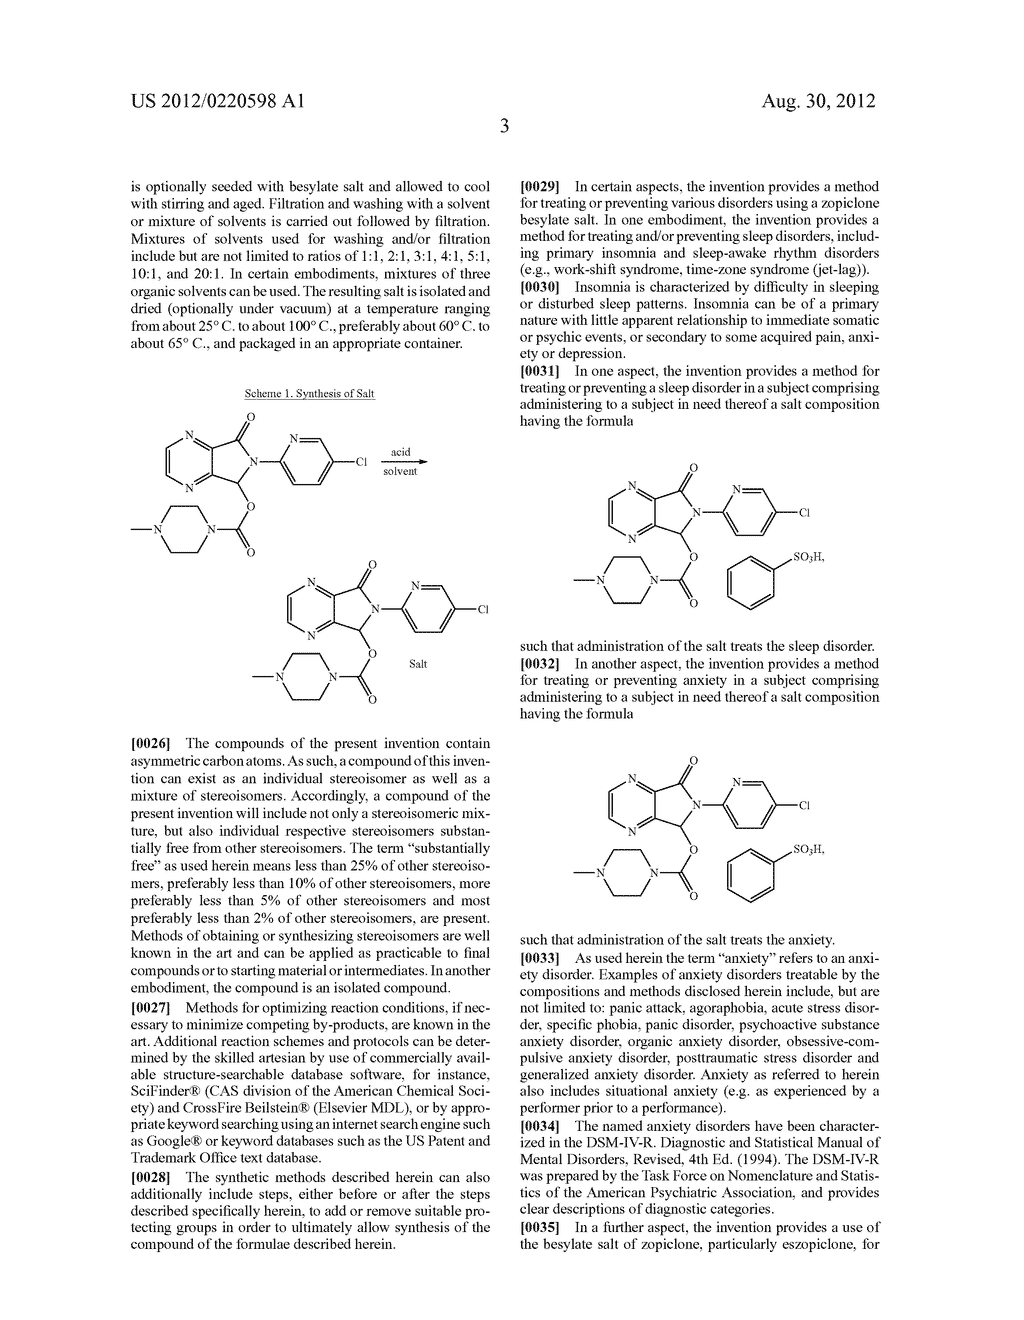 Besylate Salts of 6-(5-Chloro-2-Pyridyl)-5-[(4     Methyl-1-Piperazinyl)Carbonyloxy]-7-oxo-6,     7-dihydro-5H-Pyrrolo[3,4-b]Pyrazine - diagram, schematic, and image 05